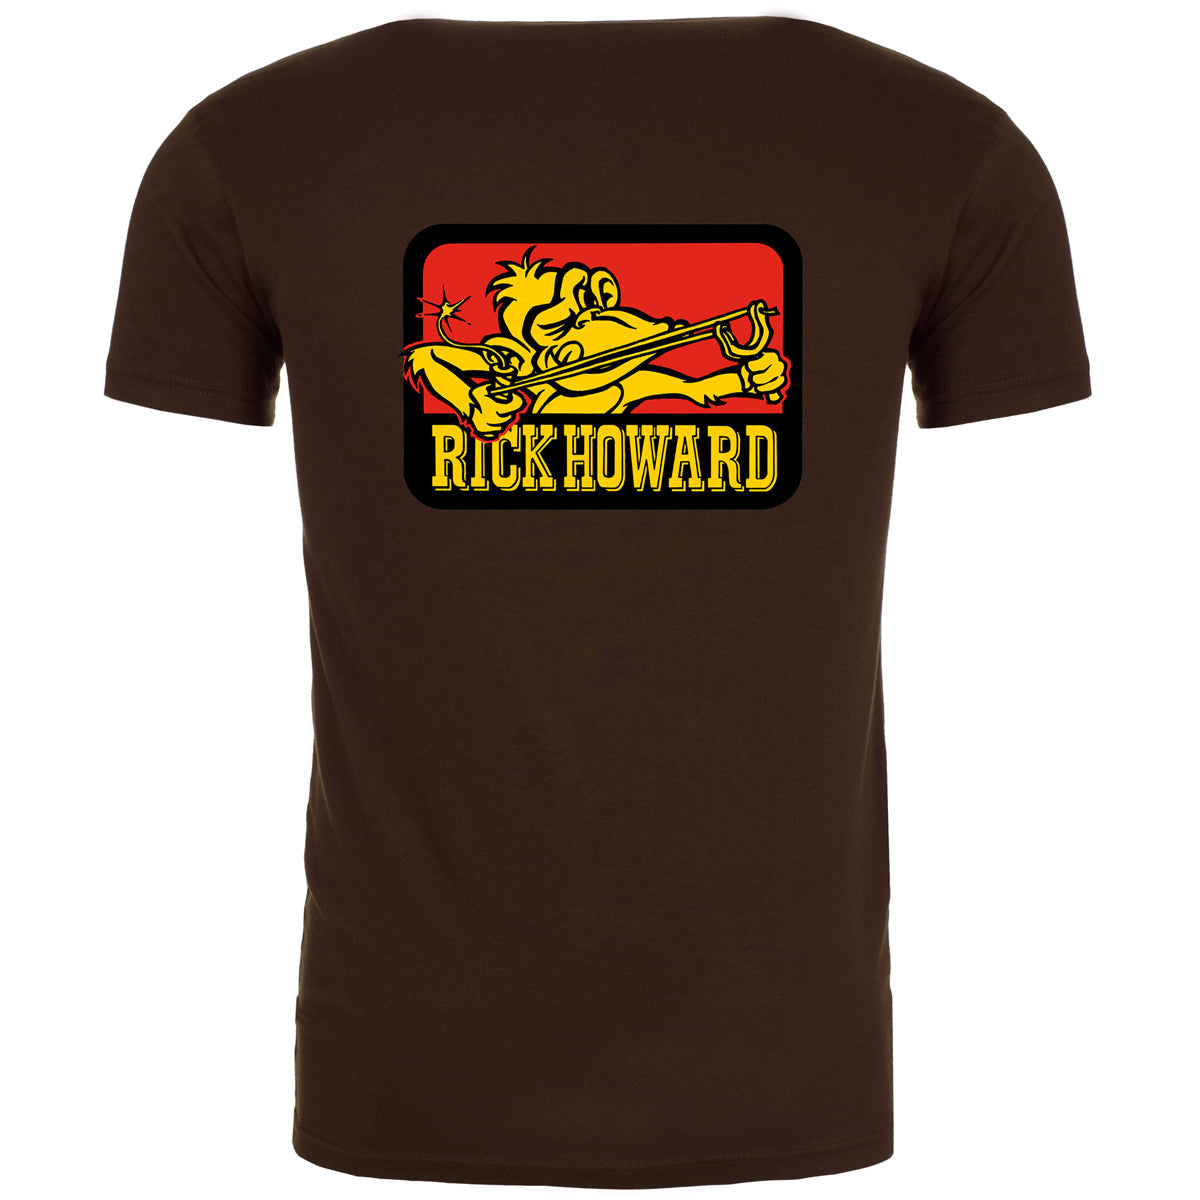 Rick Howard monkey t-shirts - in stock now!